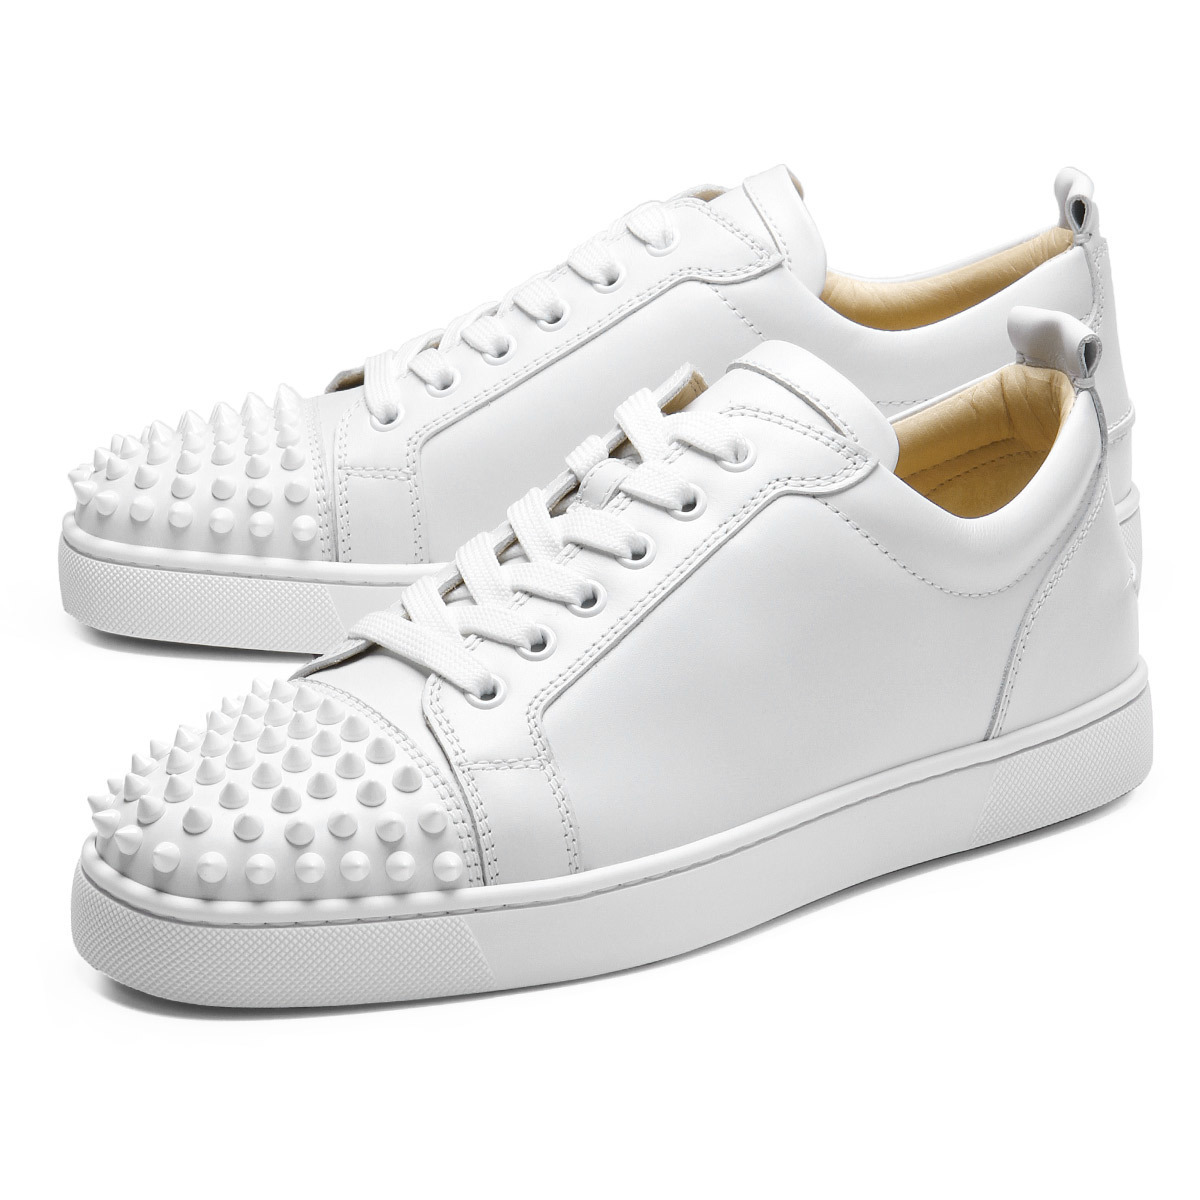 Buy: Leather Stud Sneakers Size 9 (EU 39)